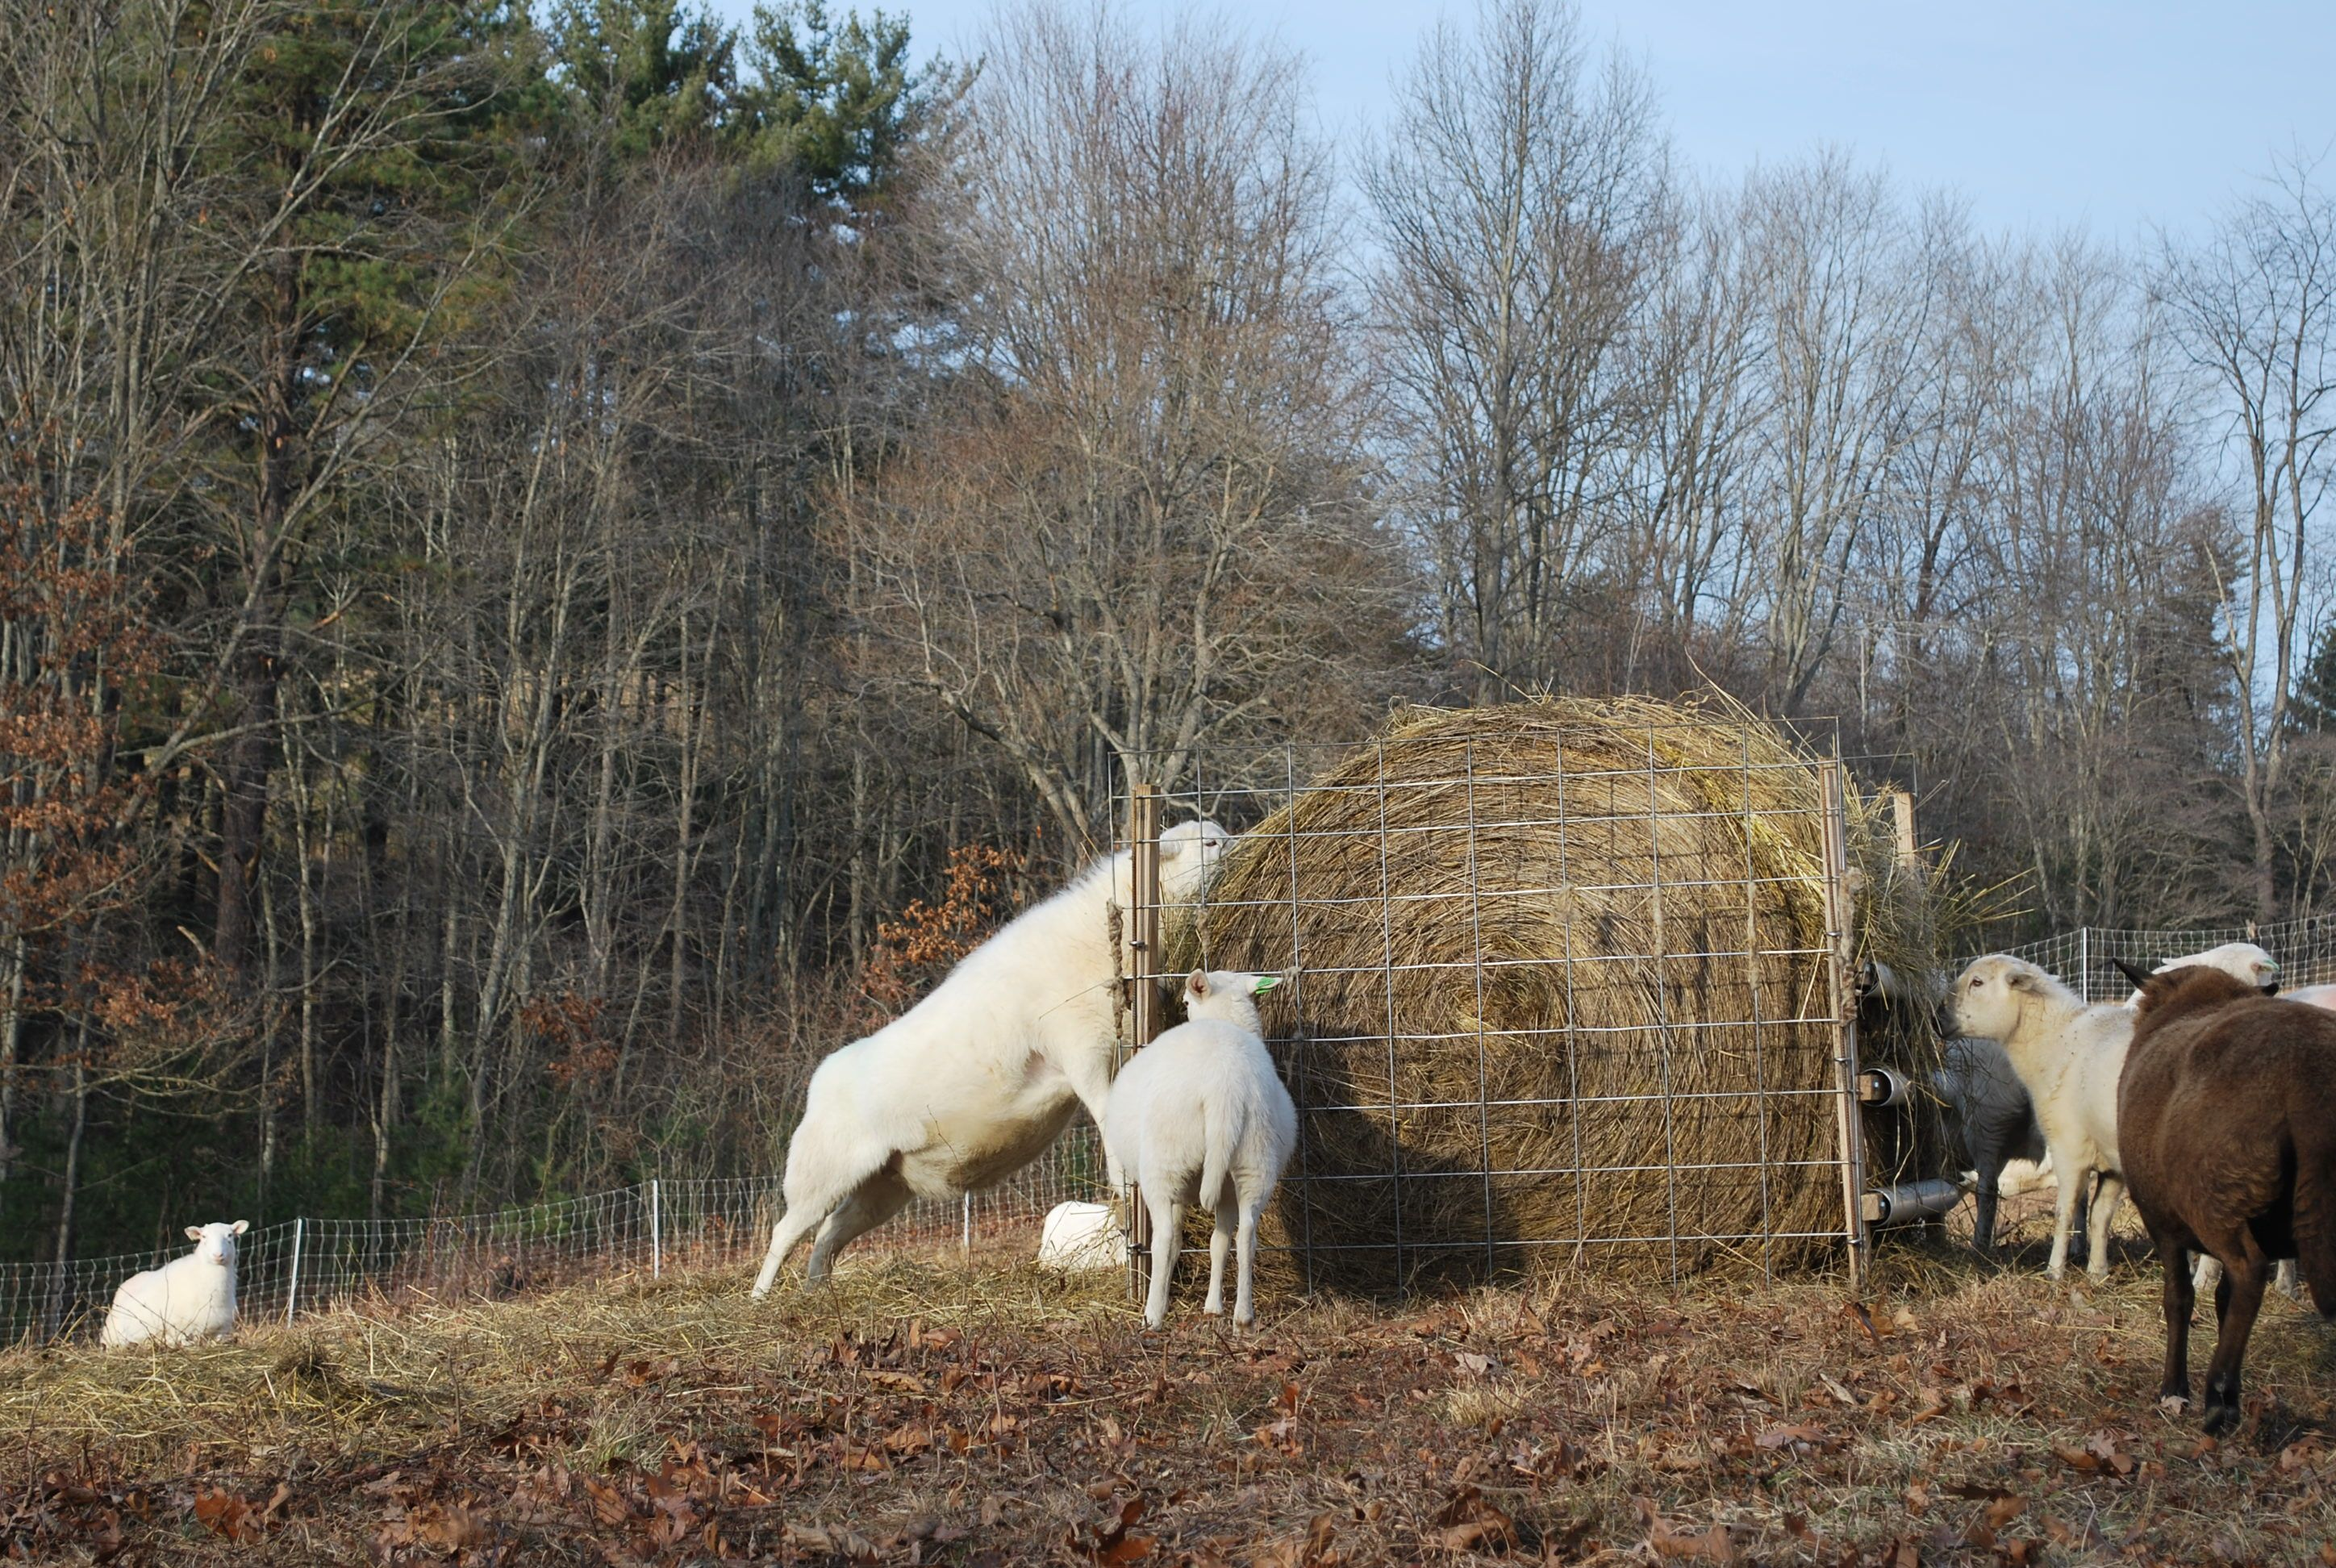 and sheep built feeder round feeders for cube goat bale barron hay goats